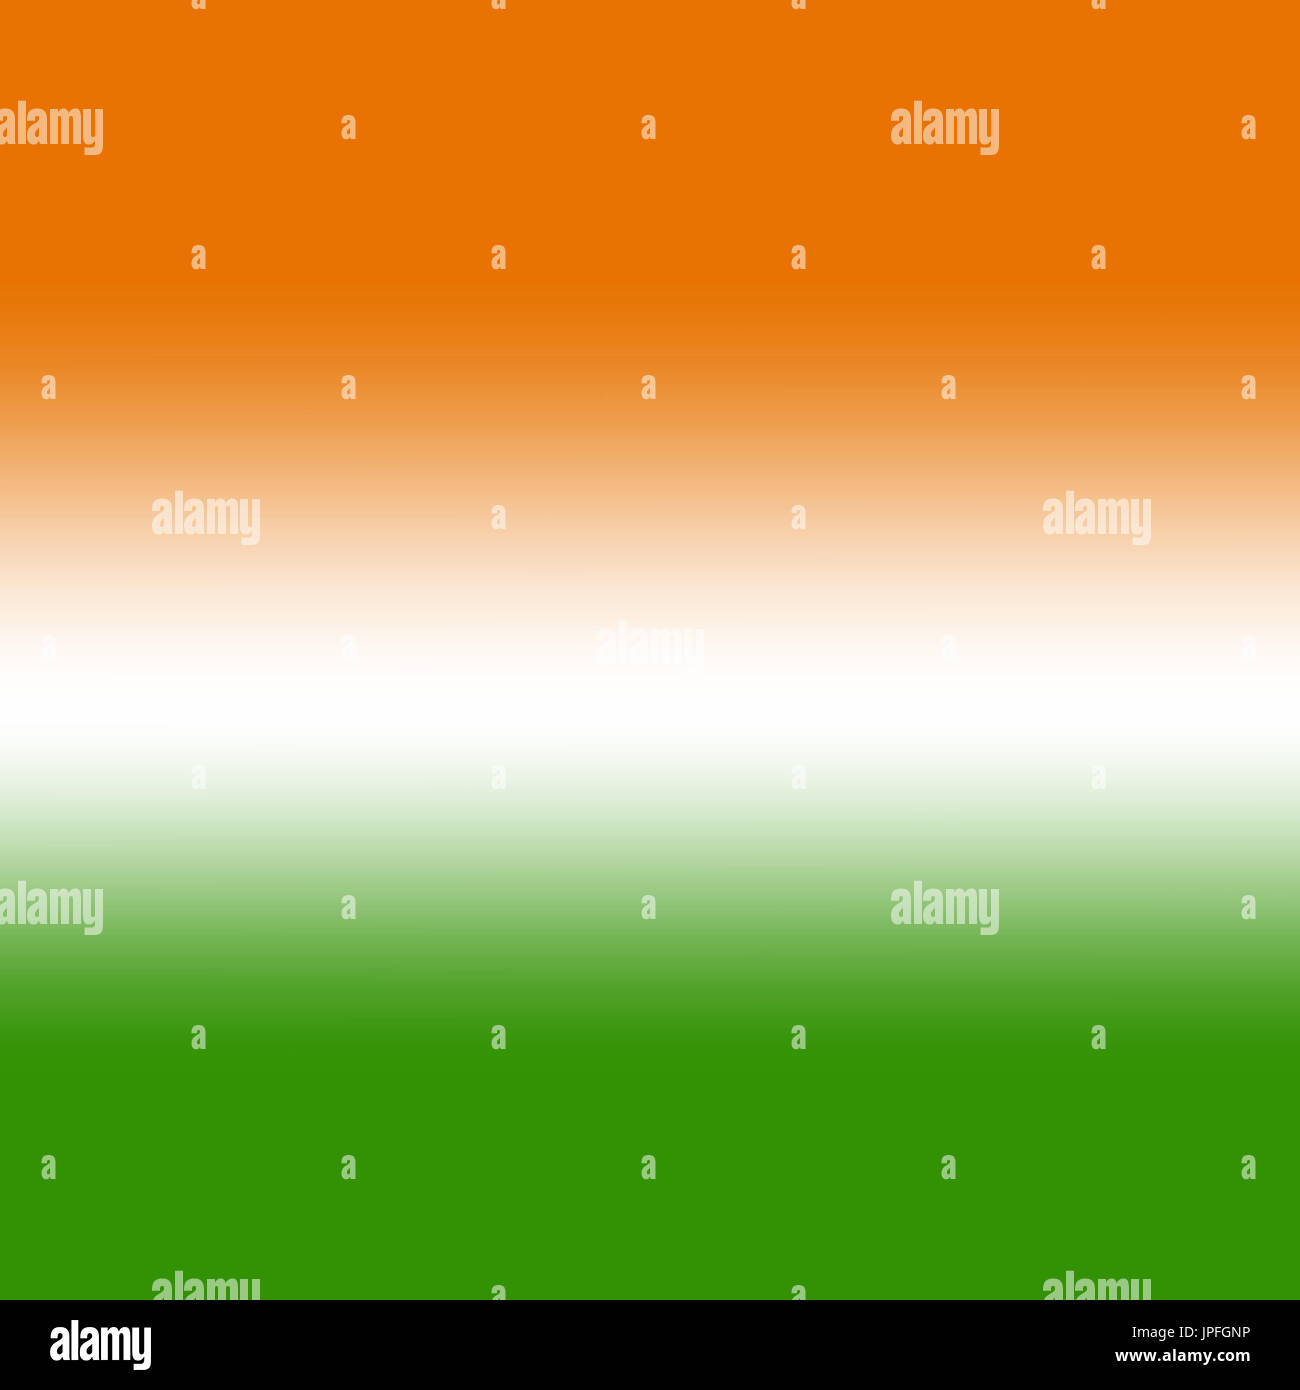 Indian Flag Tricolor Background Wallpaper Stock Photo 151547810 Alamy